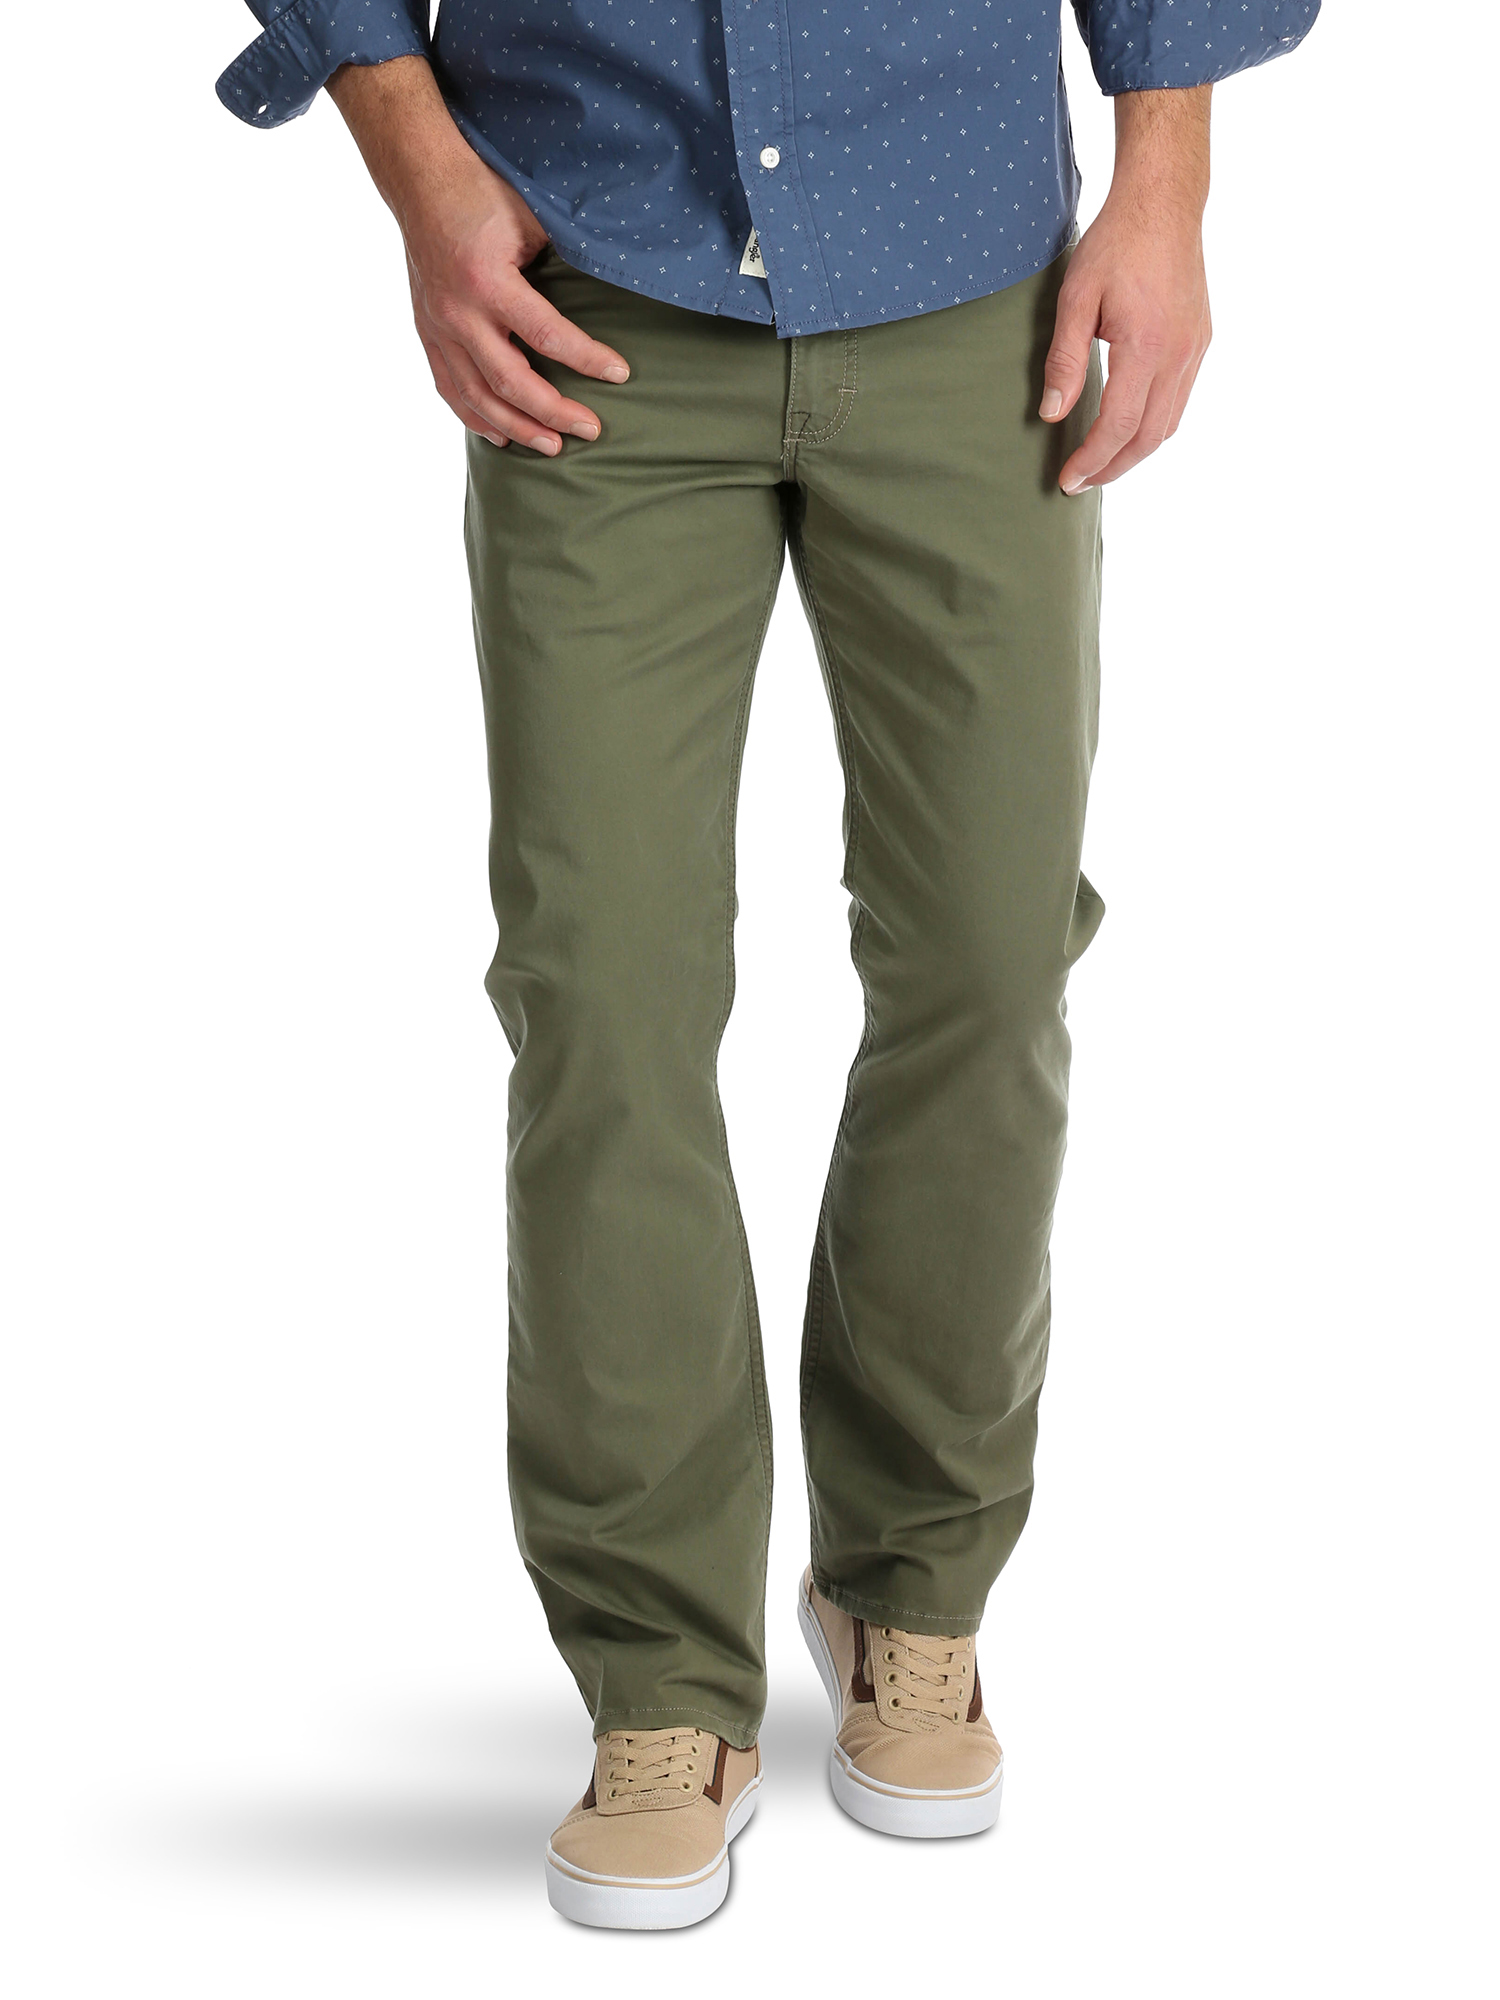 Big Men's Straight Fit 5 Pocket Pant